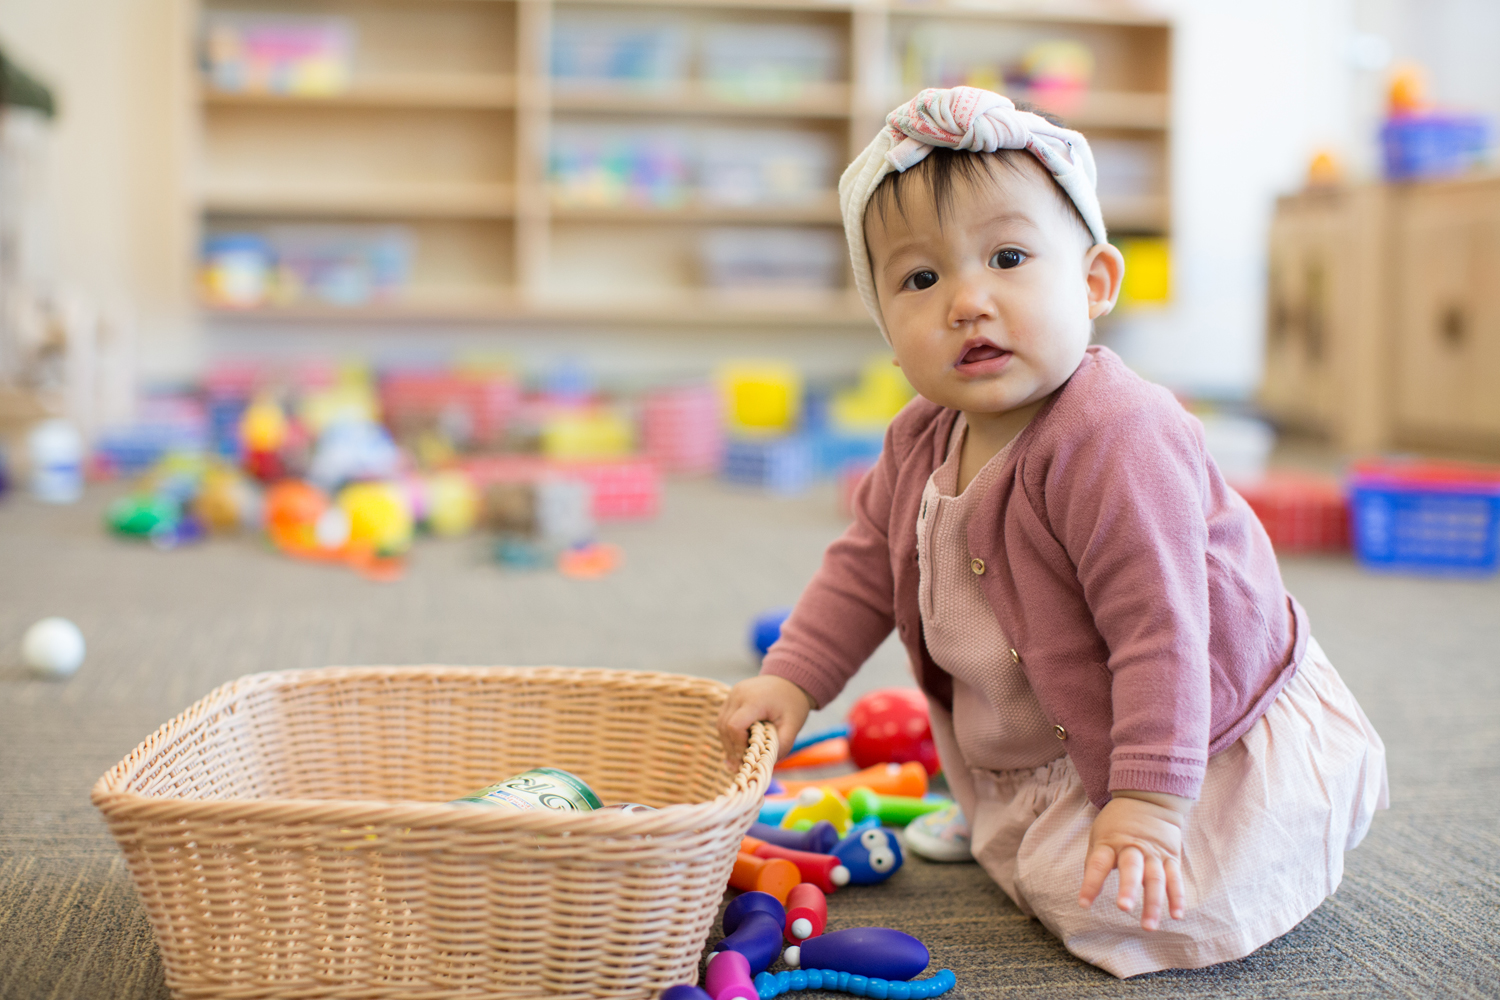 Family child care homes offer early care and education for infants through school-aged children in the home and is licensed by the State of California.